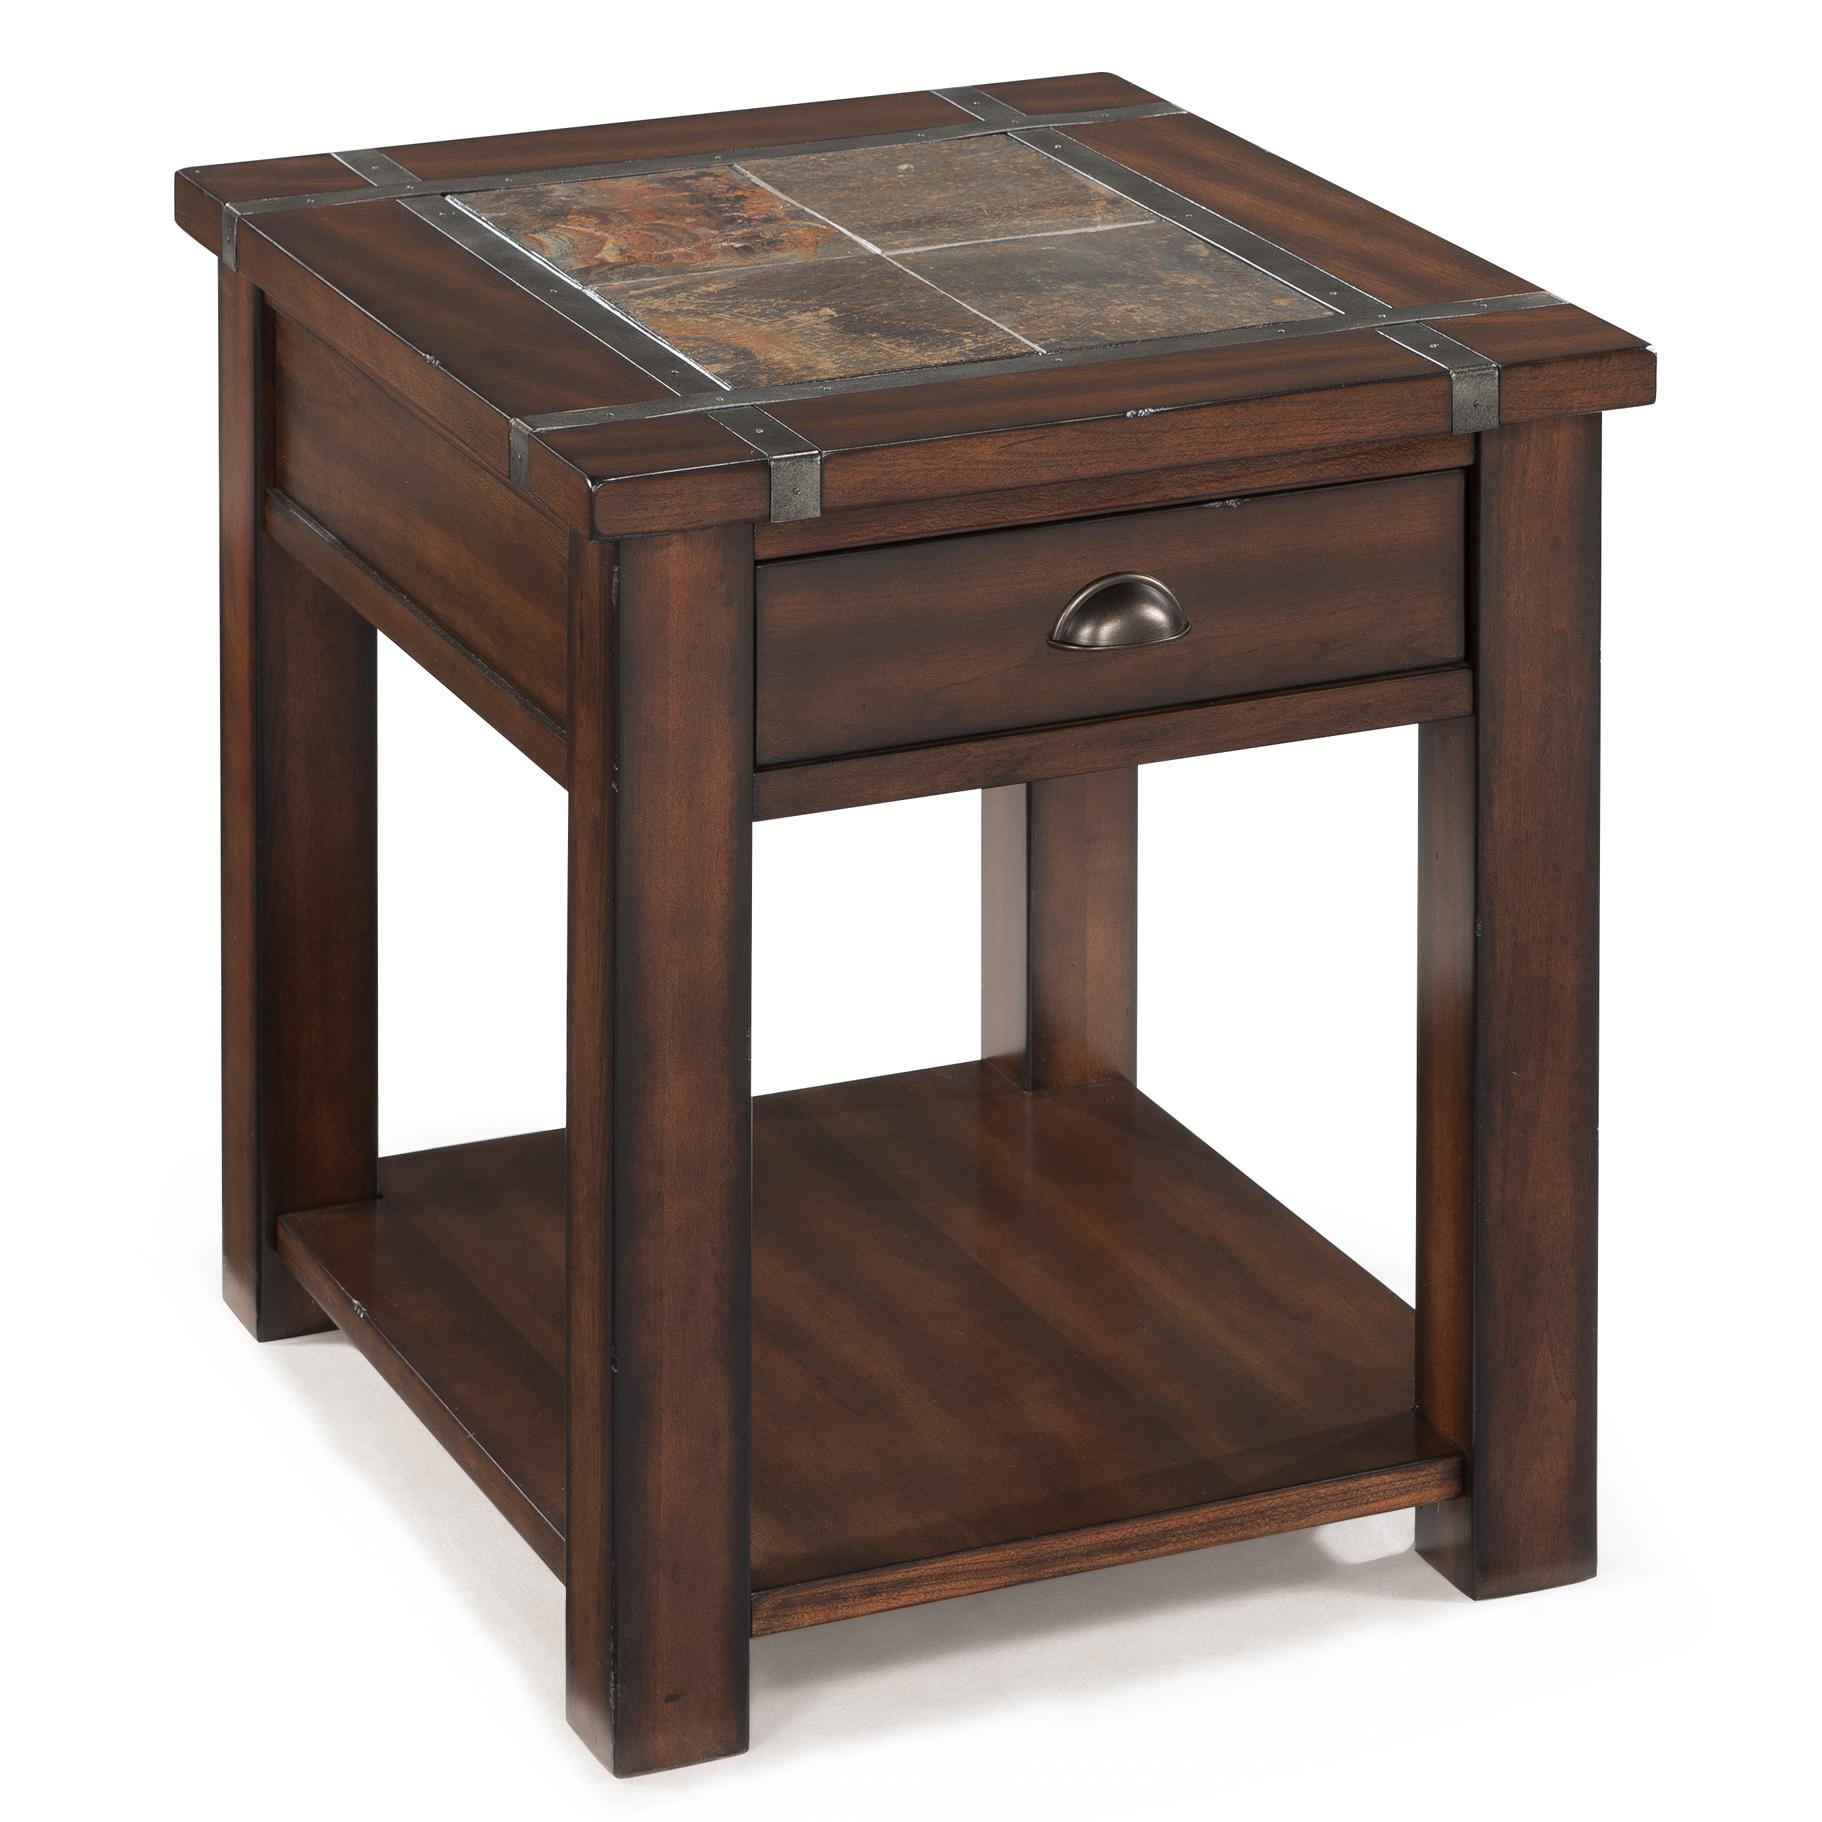 Roanoke Rectangular End Table by Magnussen Home at Johnny Janosik